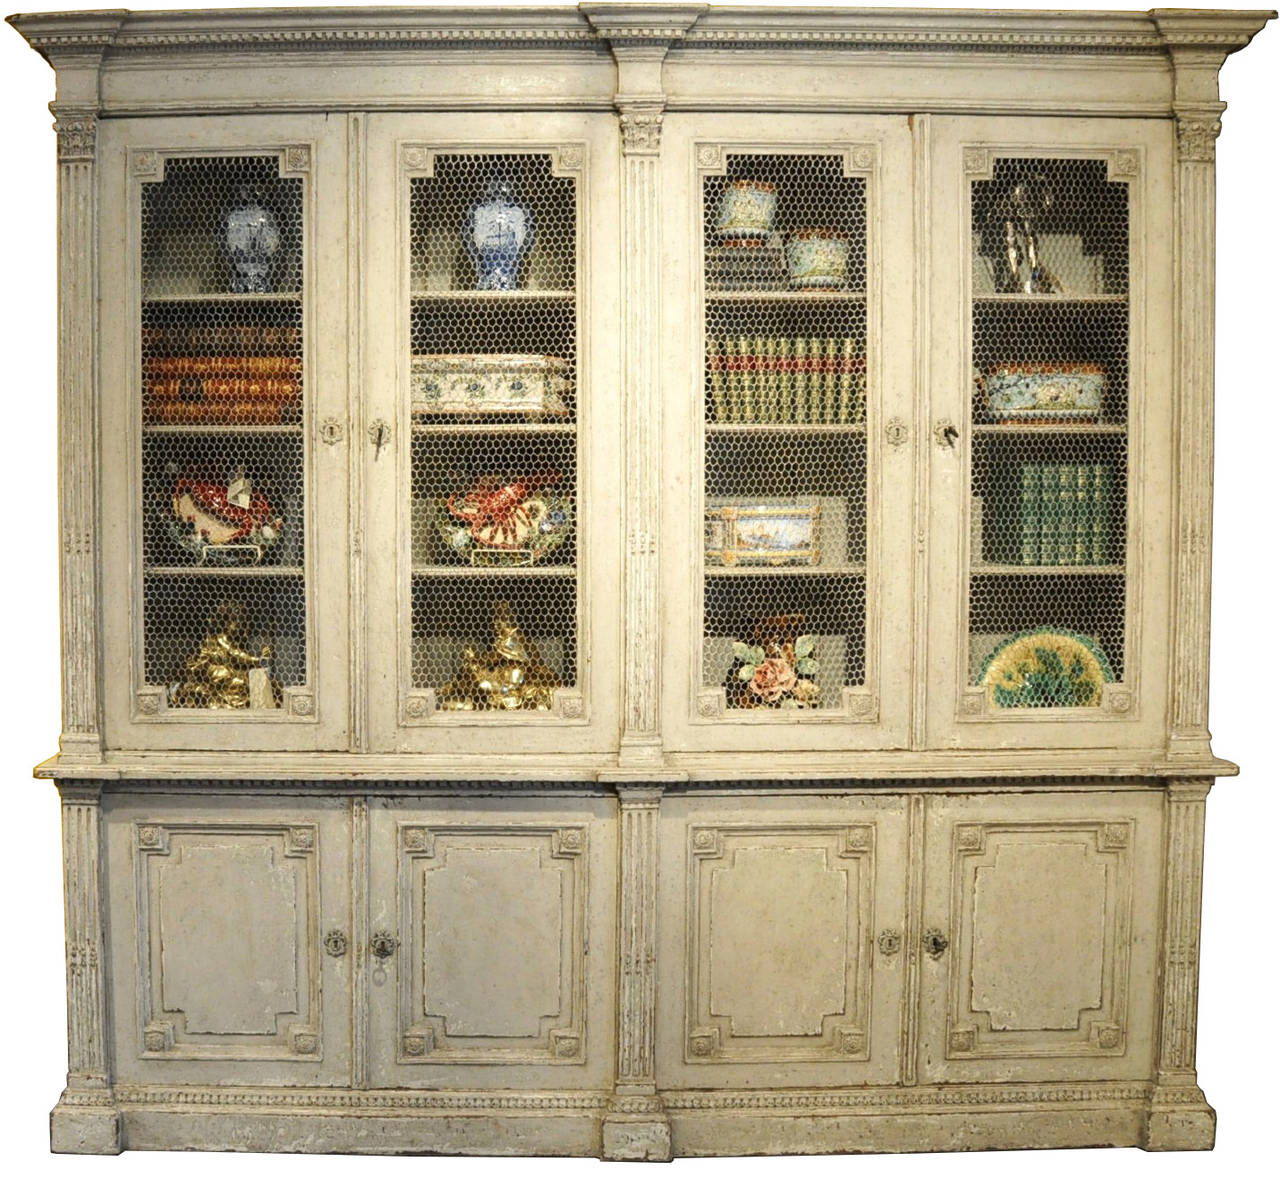 furniture annie concept our home best images sloan rare image pinterest bookcase bookcases on painted